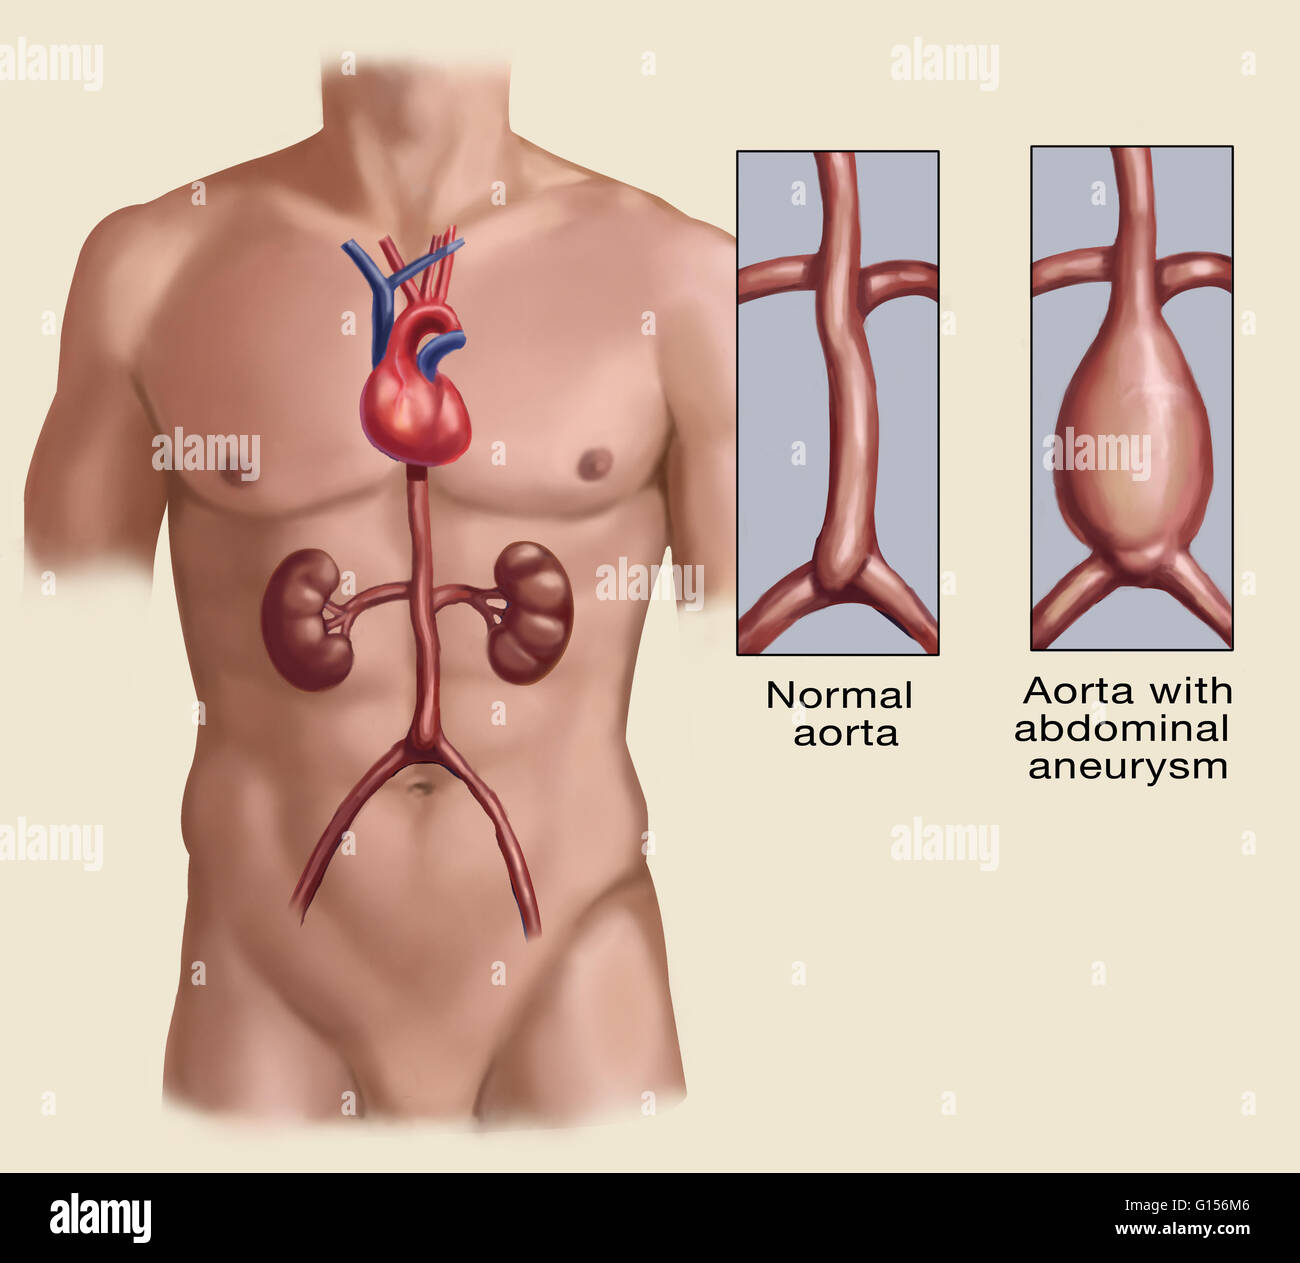 Appearance of a normal abdominal aorta and one with abdominal aortic ...